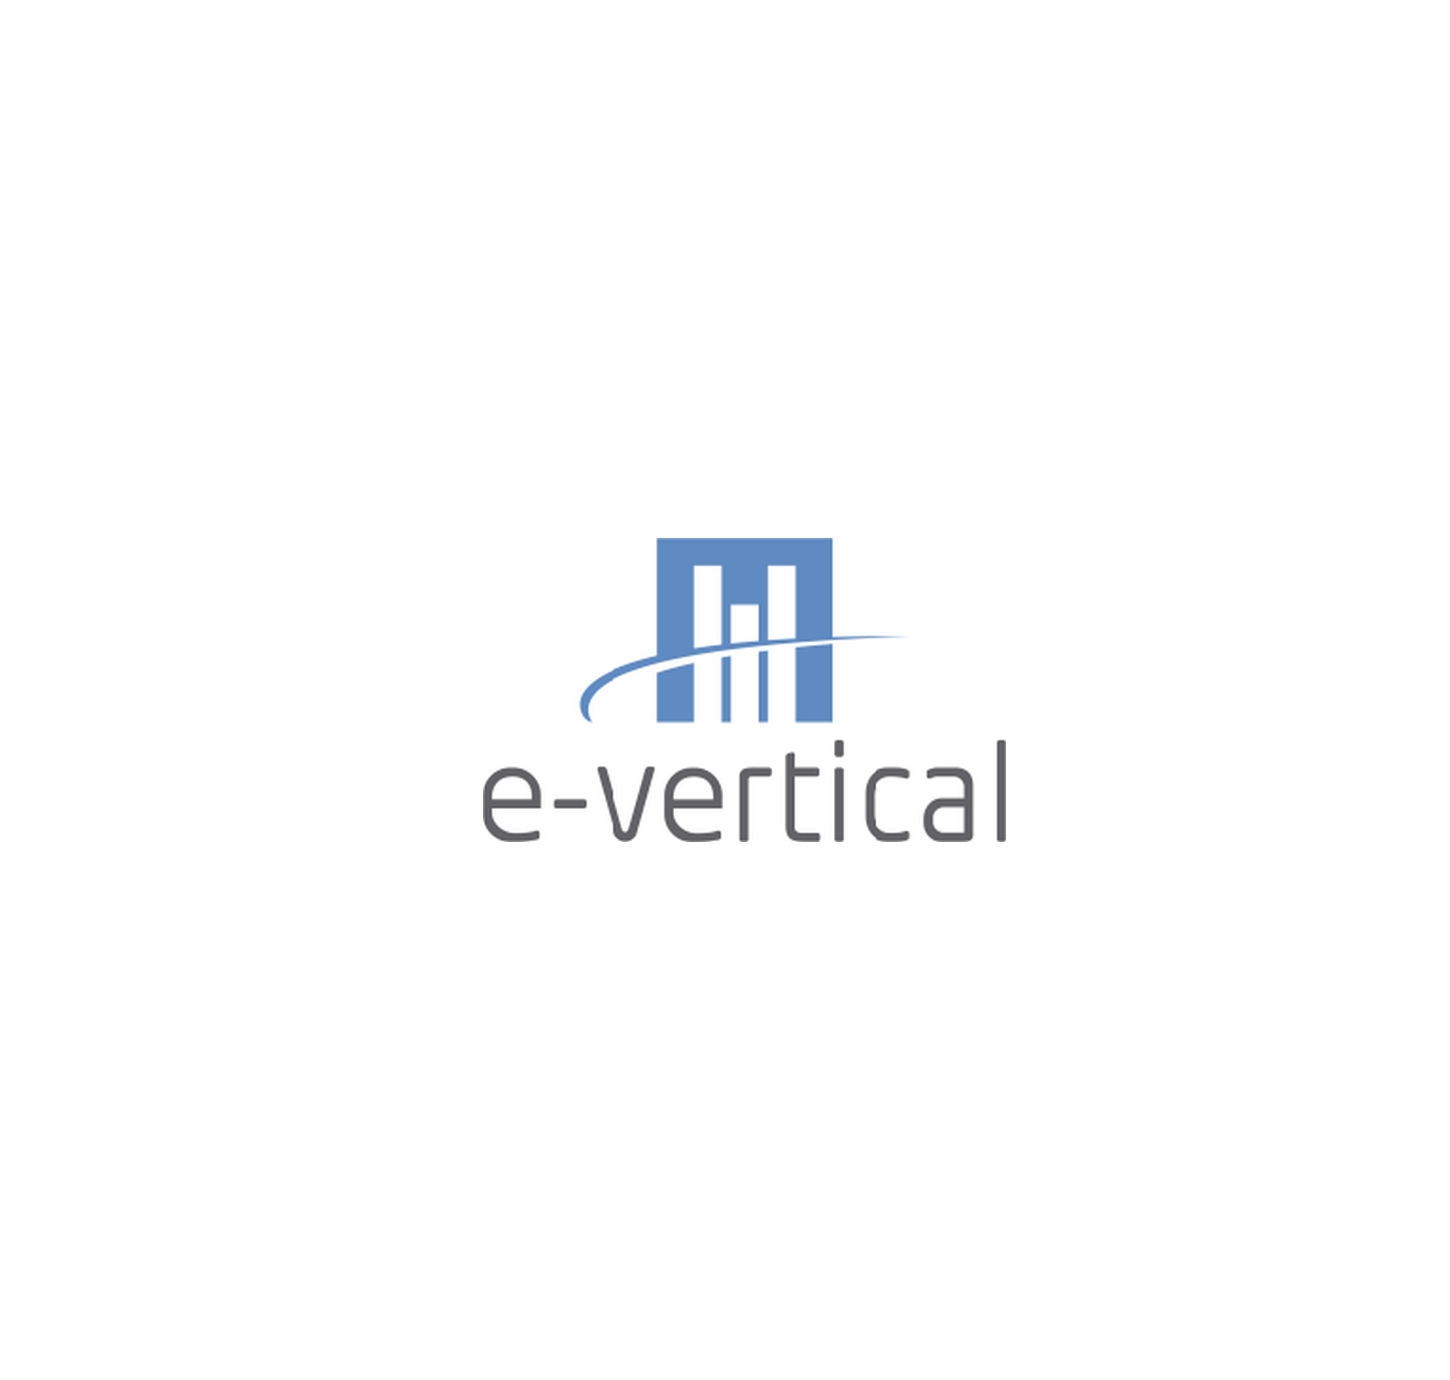 Evertical